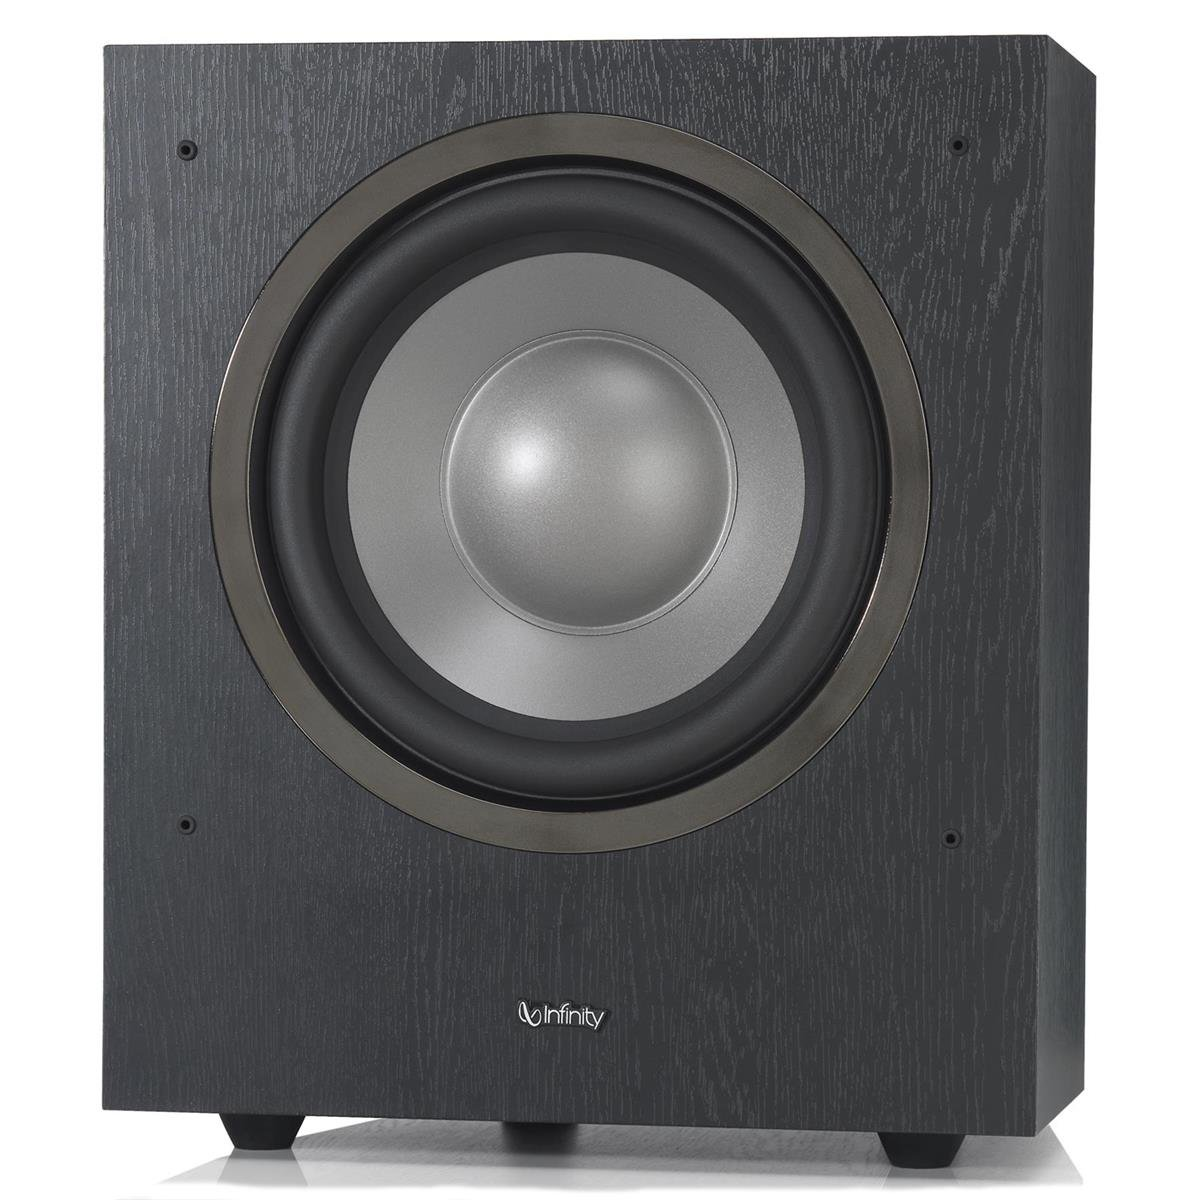 Infinity SUB R10 Reference Series 10'' 200w Powered Subwoofer - Each (Black) by Infinity